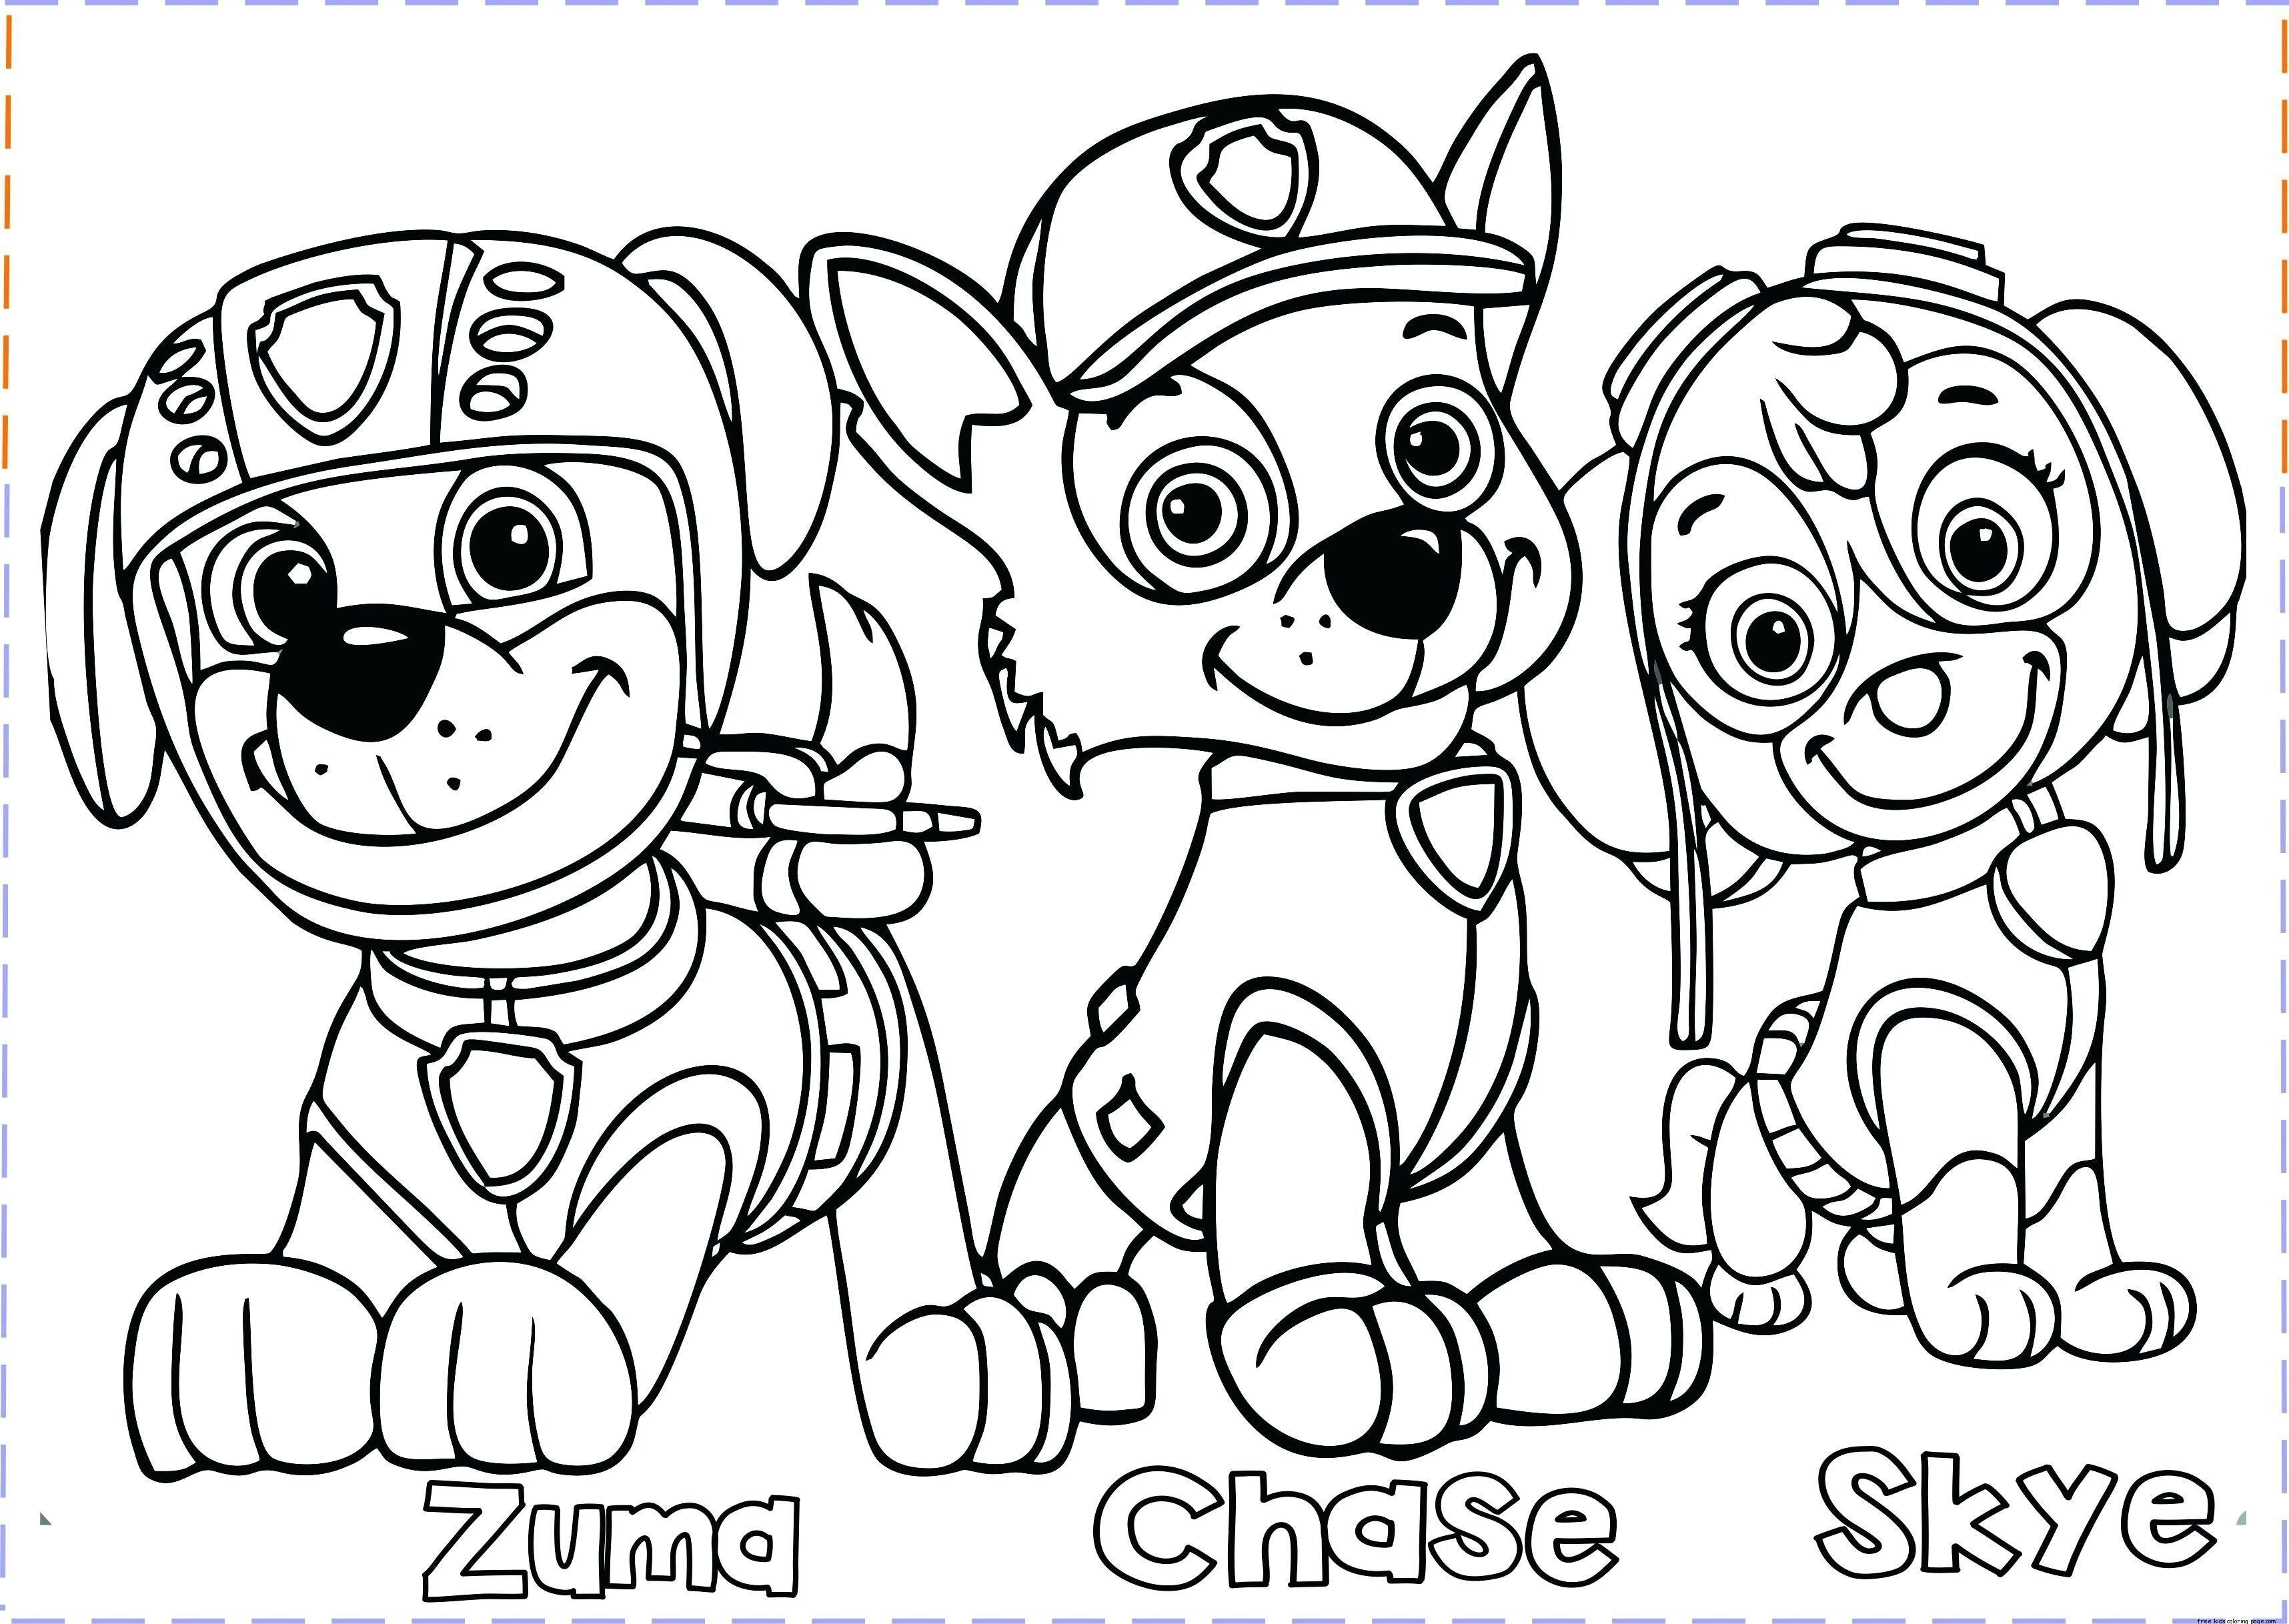 Paw Patrol Coloring Book Inspirational Coloring Pages Printable Coloring Book Pages With M Paw Patrol Coloring Paw Patrol Coloring Pages Cartoon Coloring Pages